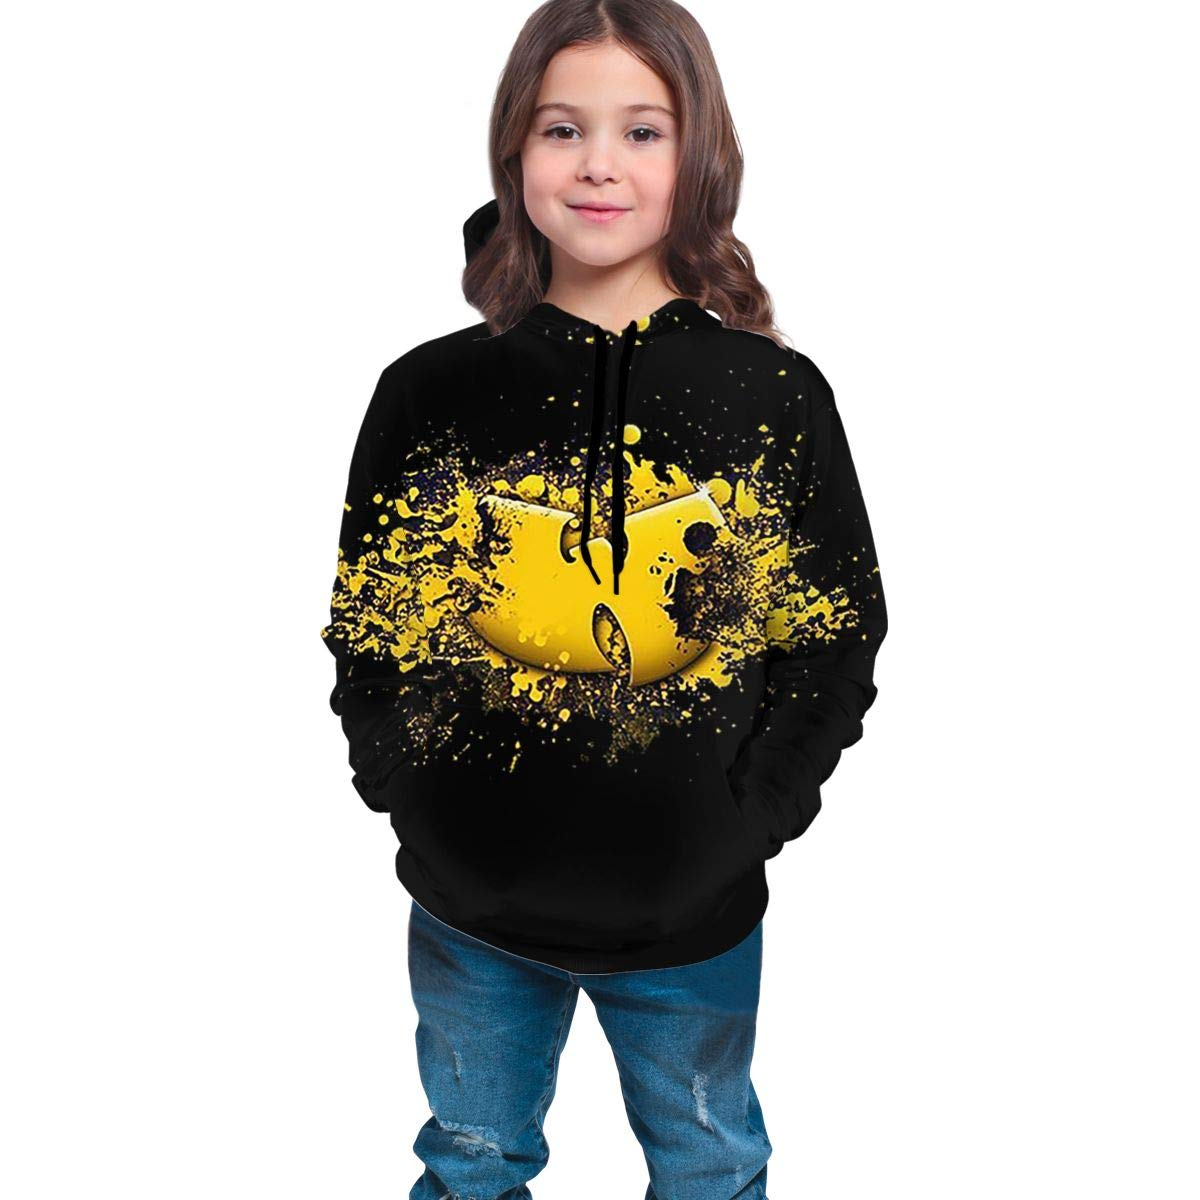 Wu Tang Clan Youth Hoodies,Two-Sided 3D Printed Long Sleeve Pullover Hooded Sweatshirt Hoodies for Kids Youth Boys Girls